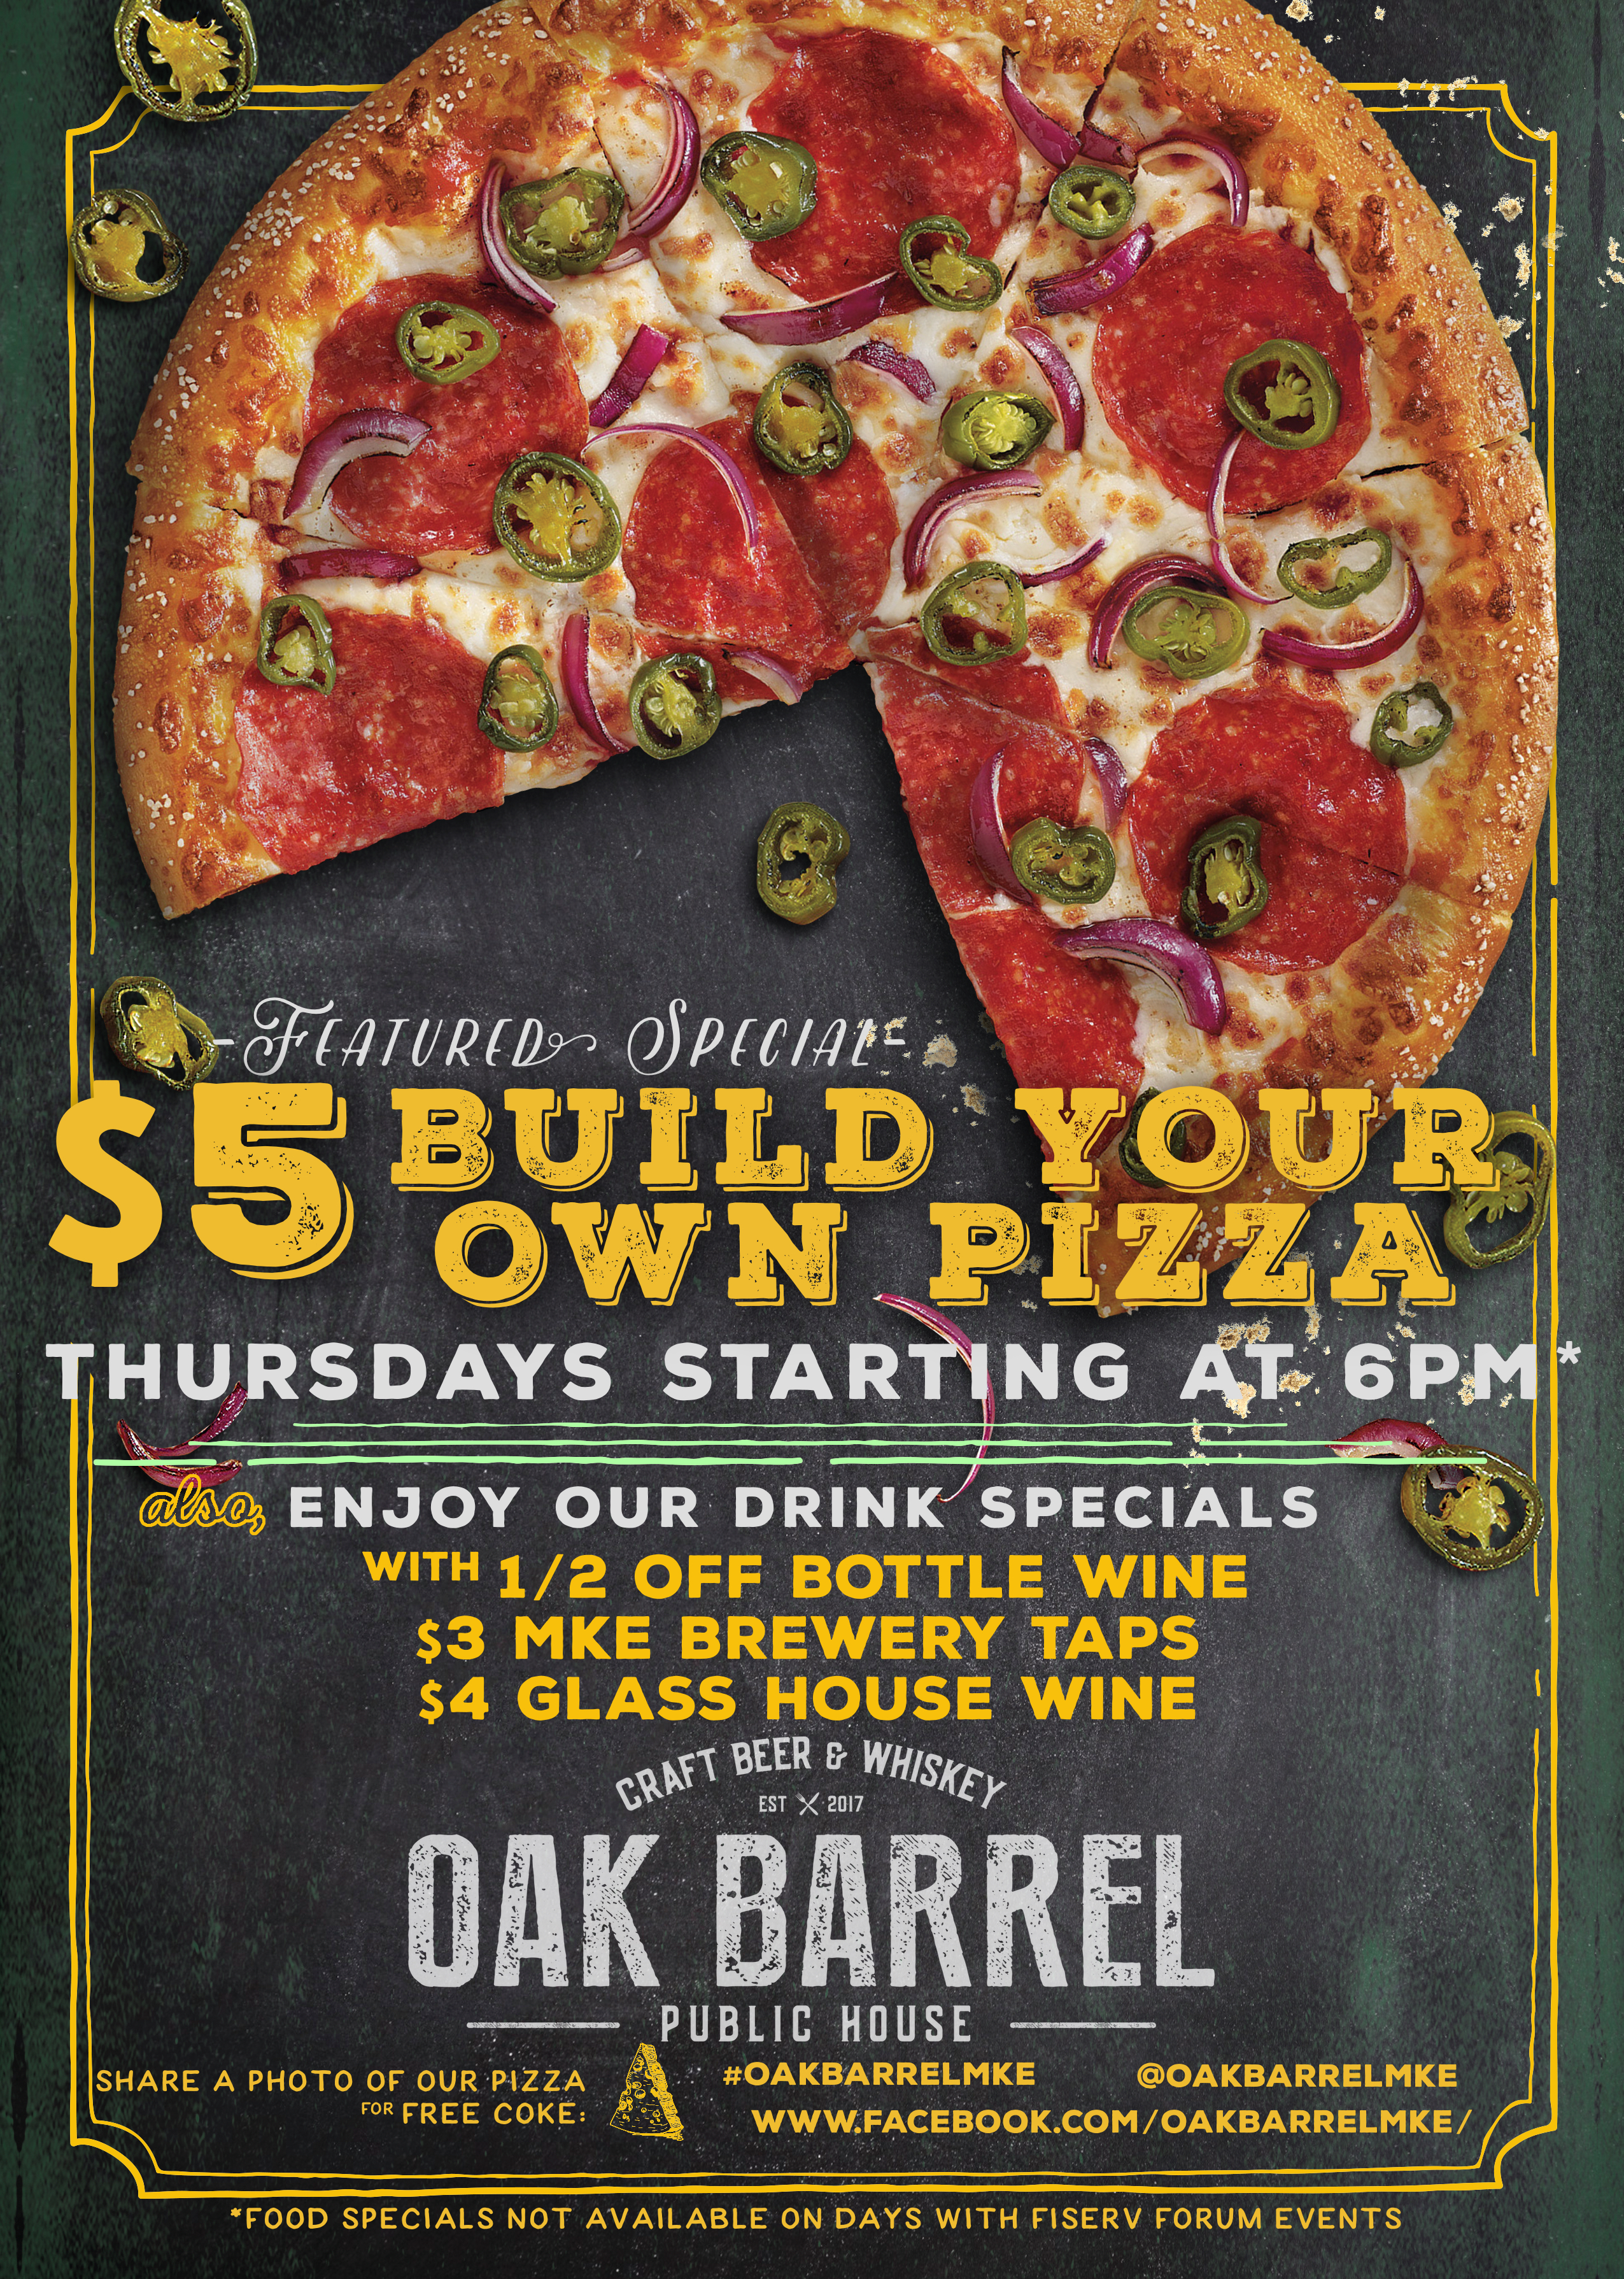 Build Your on Pizza on Thursdays!